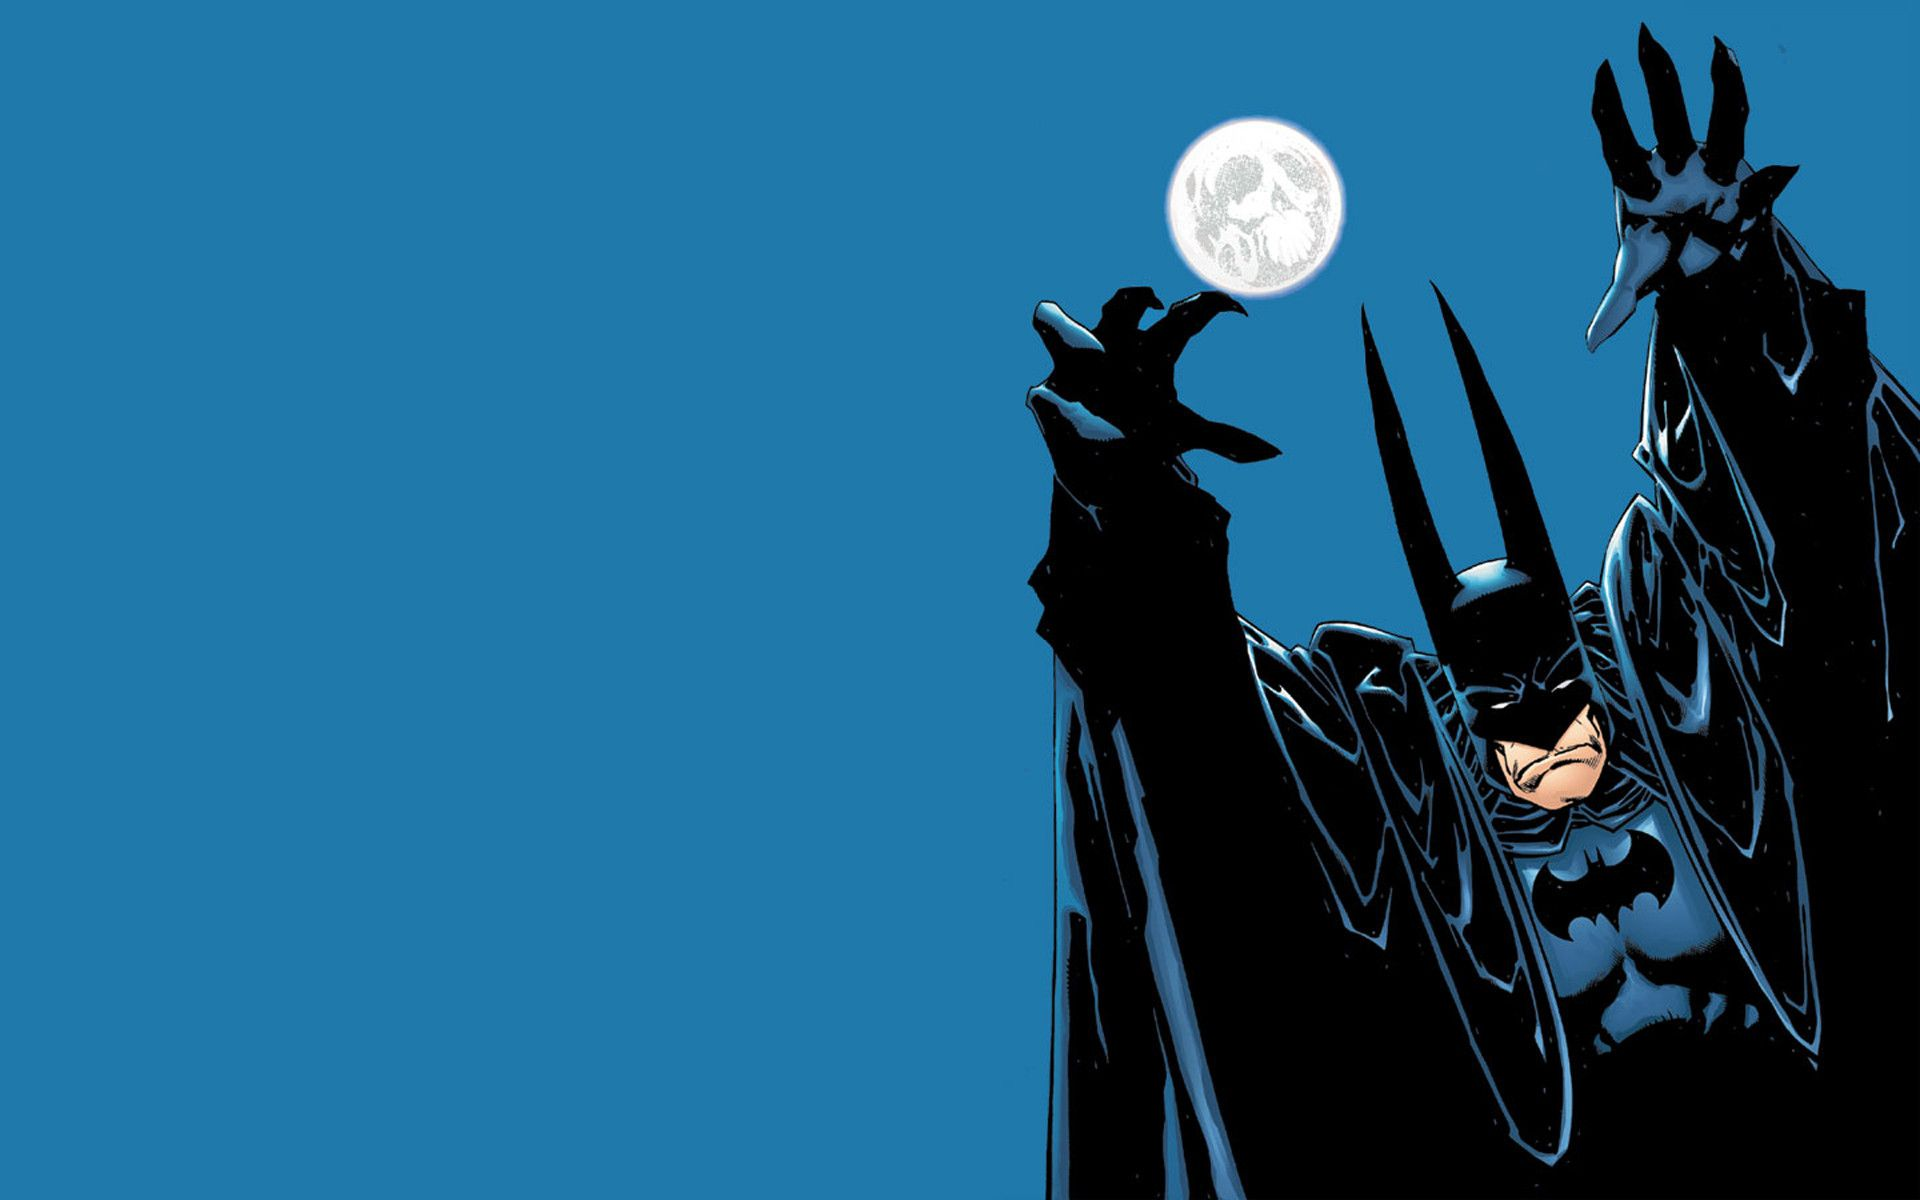 Batman Cartoon HD Wallpapers